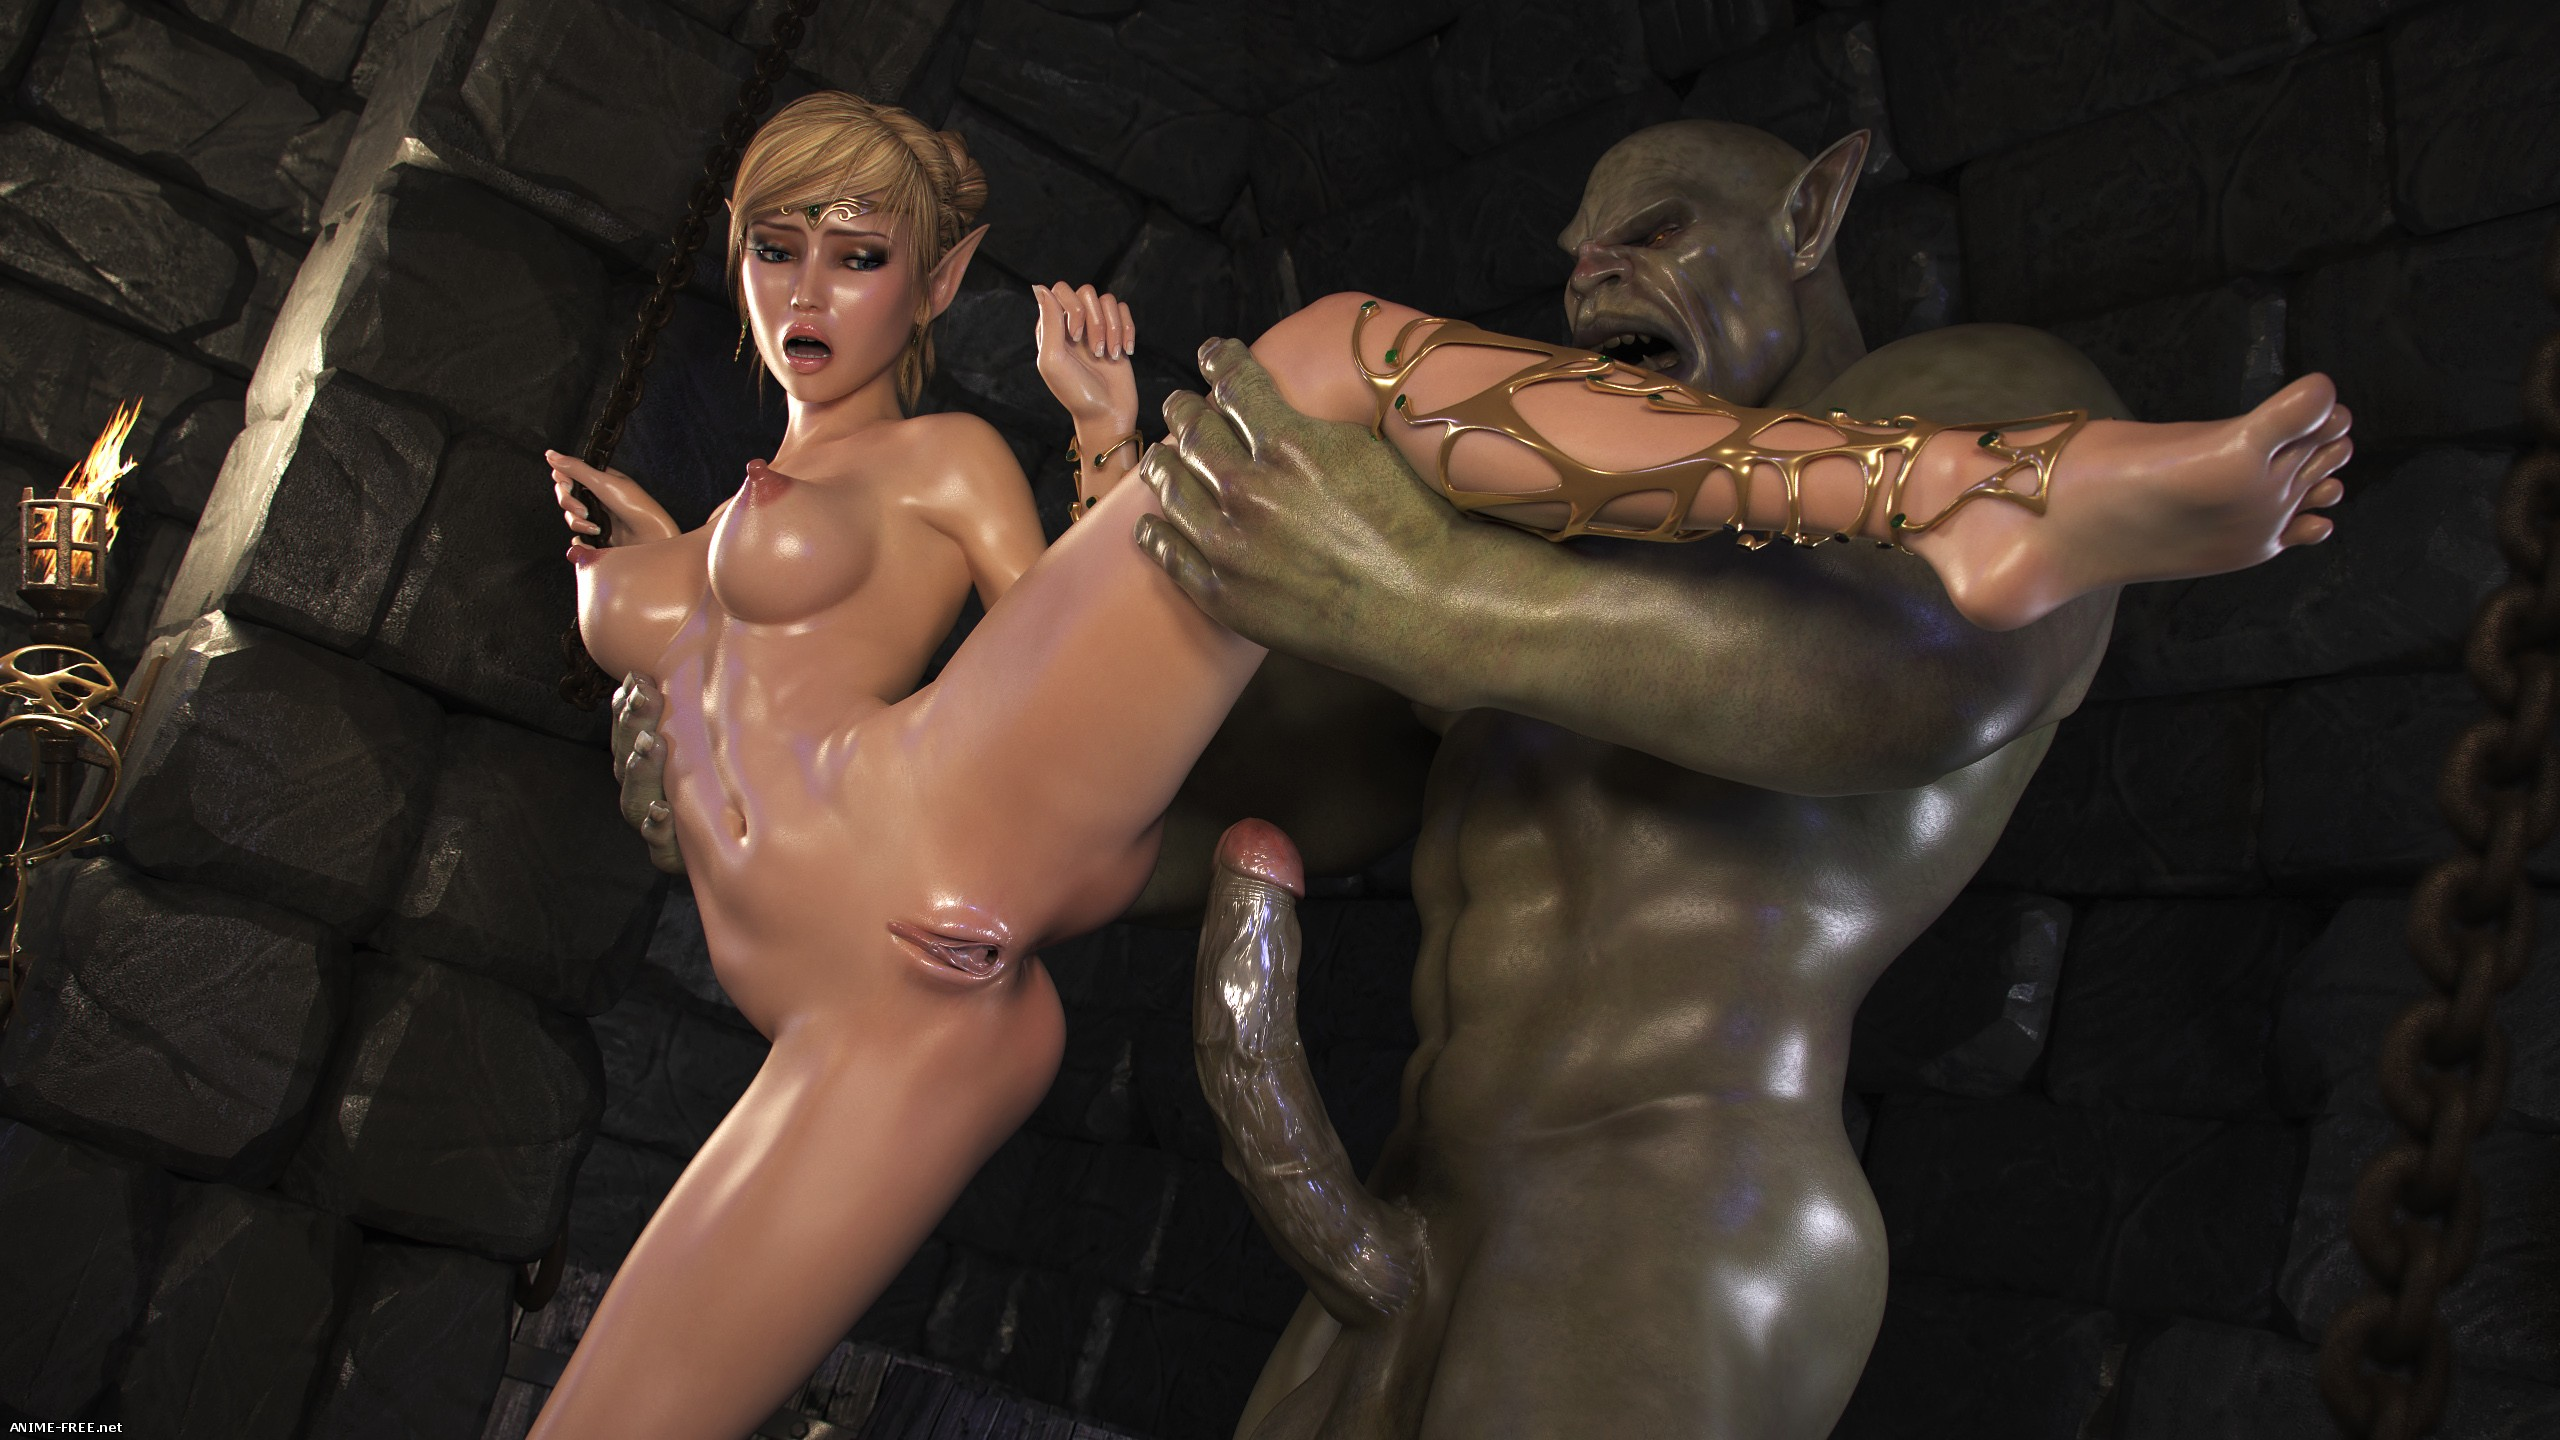 Dungeon Origins 3 [3DCG] [Uncen] [ENG] Porn Comics